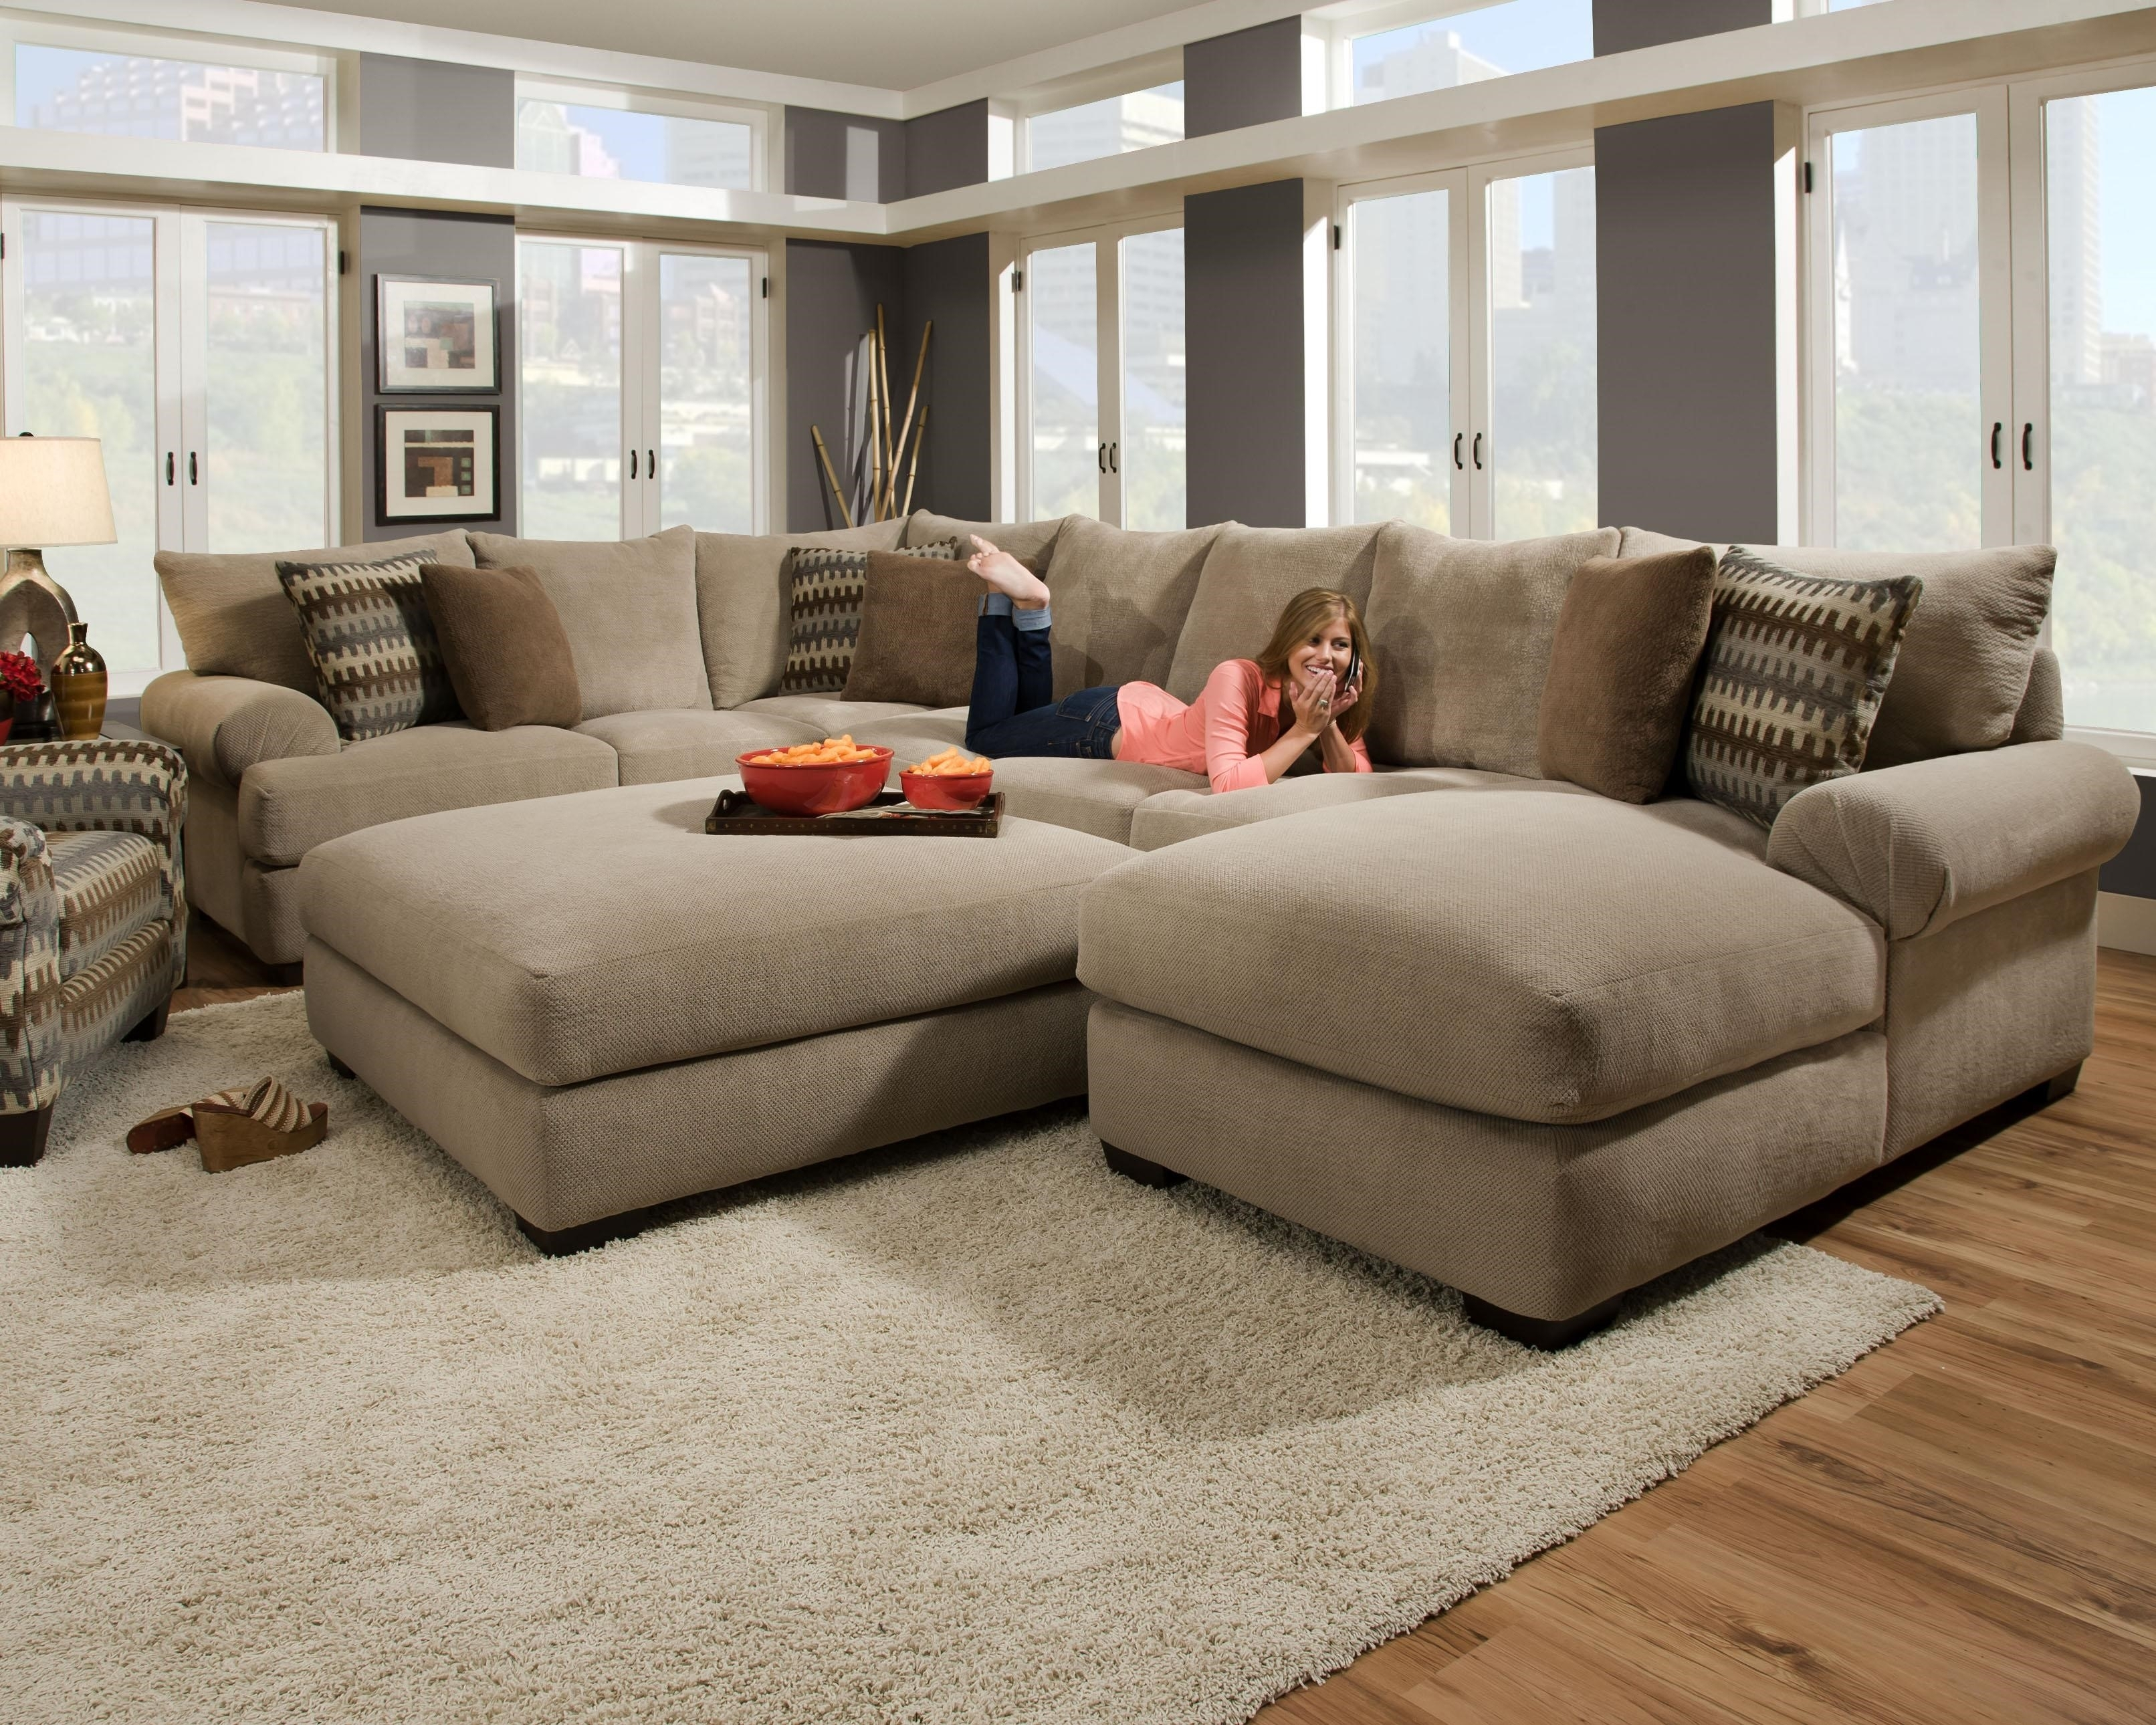 Cheap Sectional Sofas Charlotte Nc | Functionalities In Sectional Sofas In Charlotte Nc (View 2 of 10)